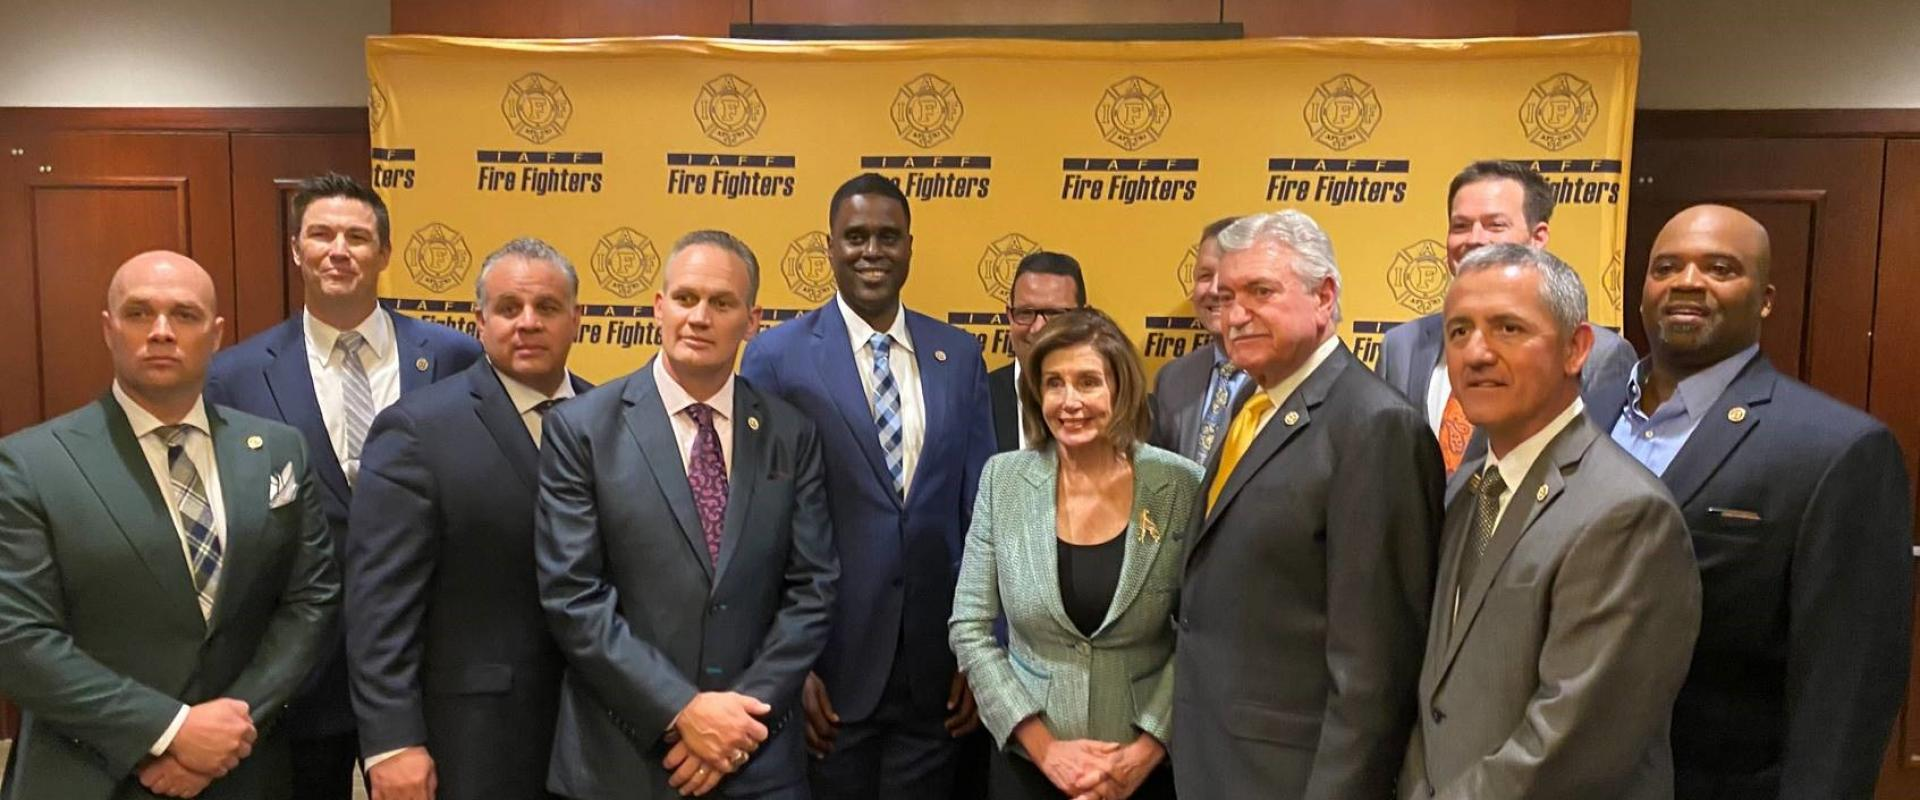 Congresswoman Nancy Pelosi joined International Association of Firefighters President Harold Schaitberger and the leaders of San Francisco Firefighters Local 798 during the IAFF Legislative Conference held in Washington, D.C.